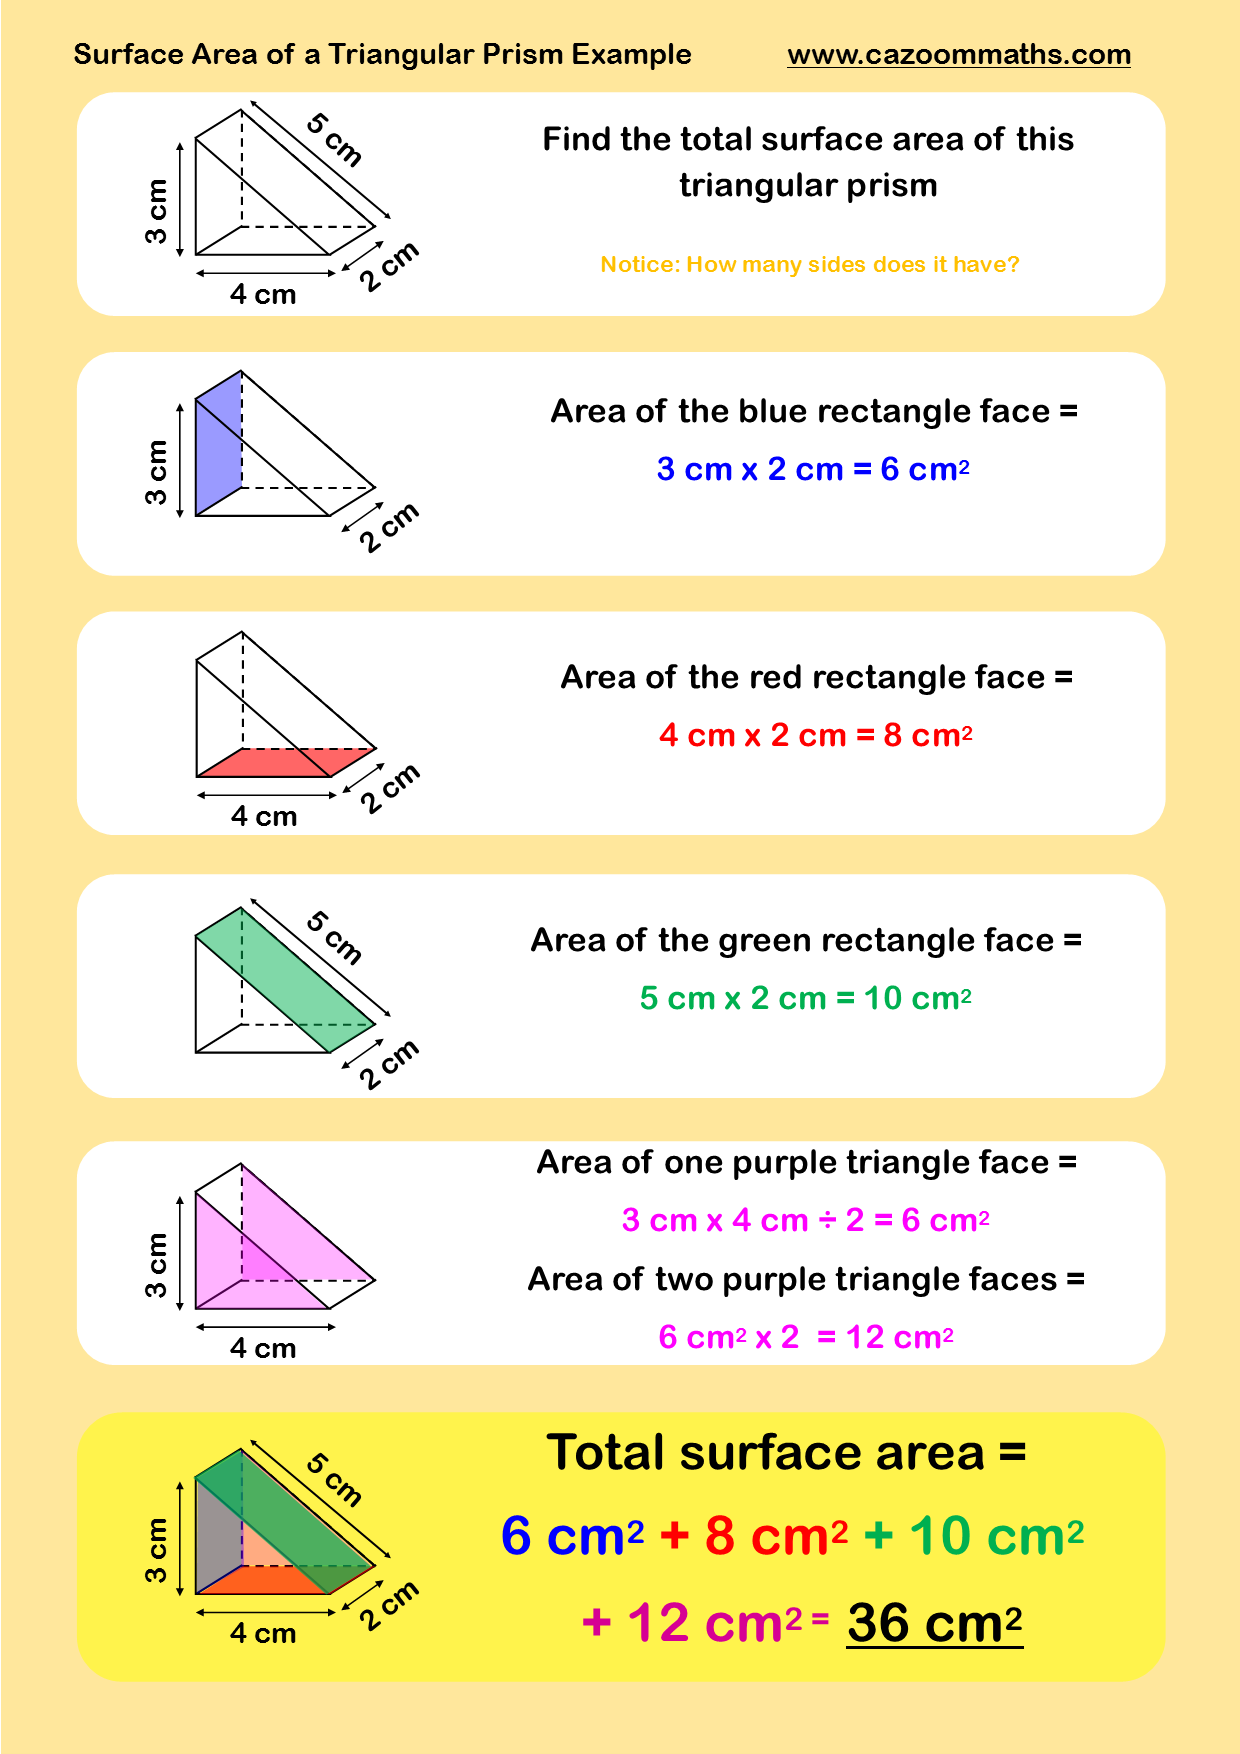 Worksheets Surface Area Triangular Prism Worksheet surface area of a triangular prism example tutoring pinterest worksheets example